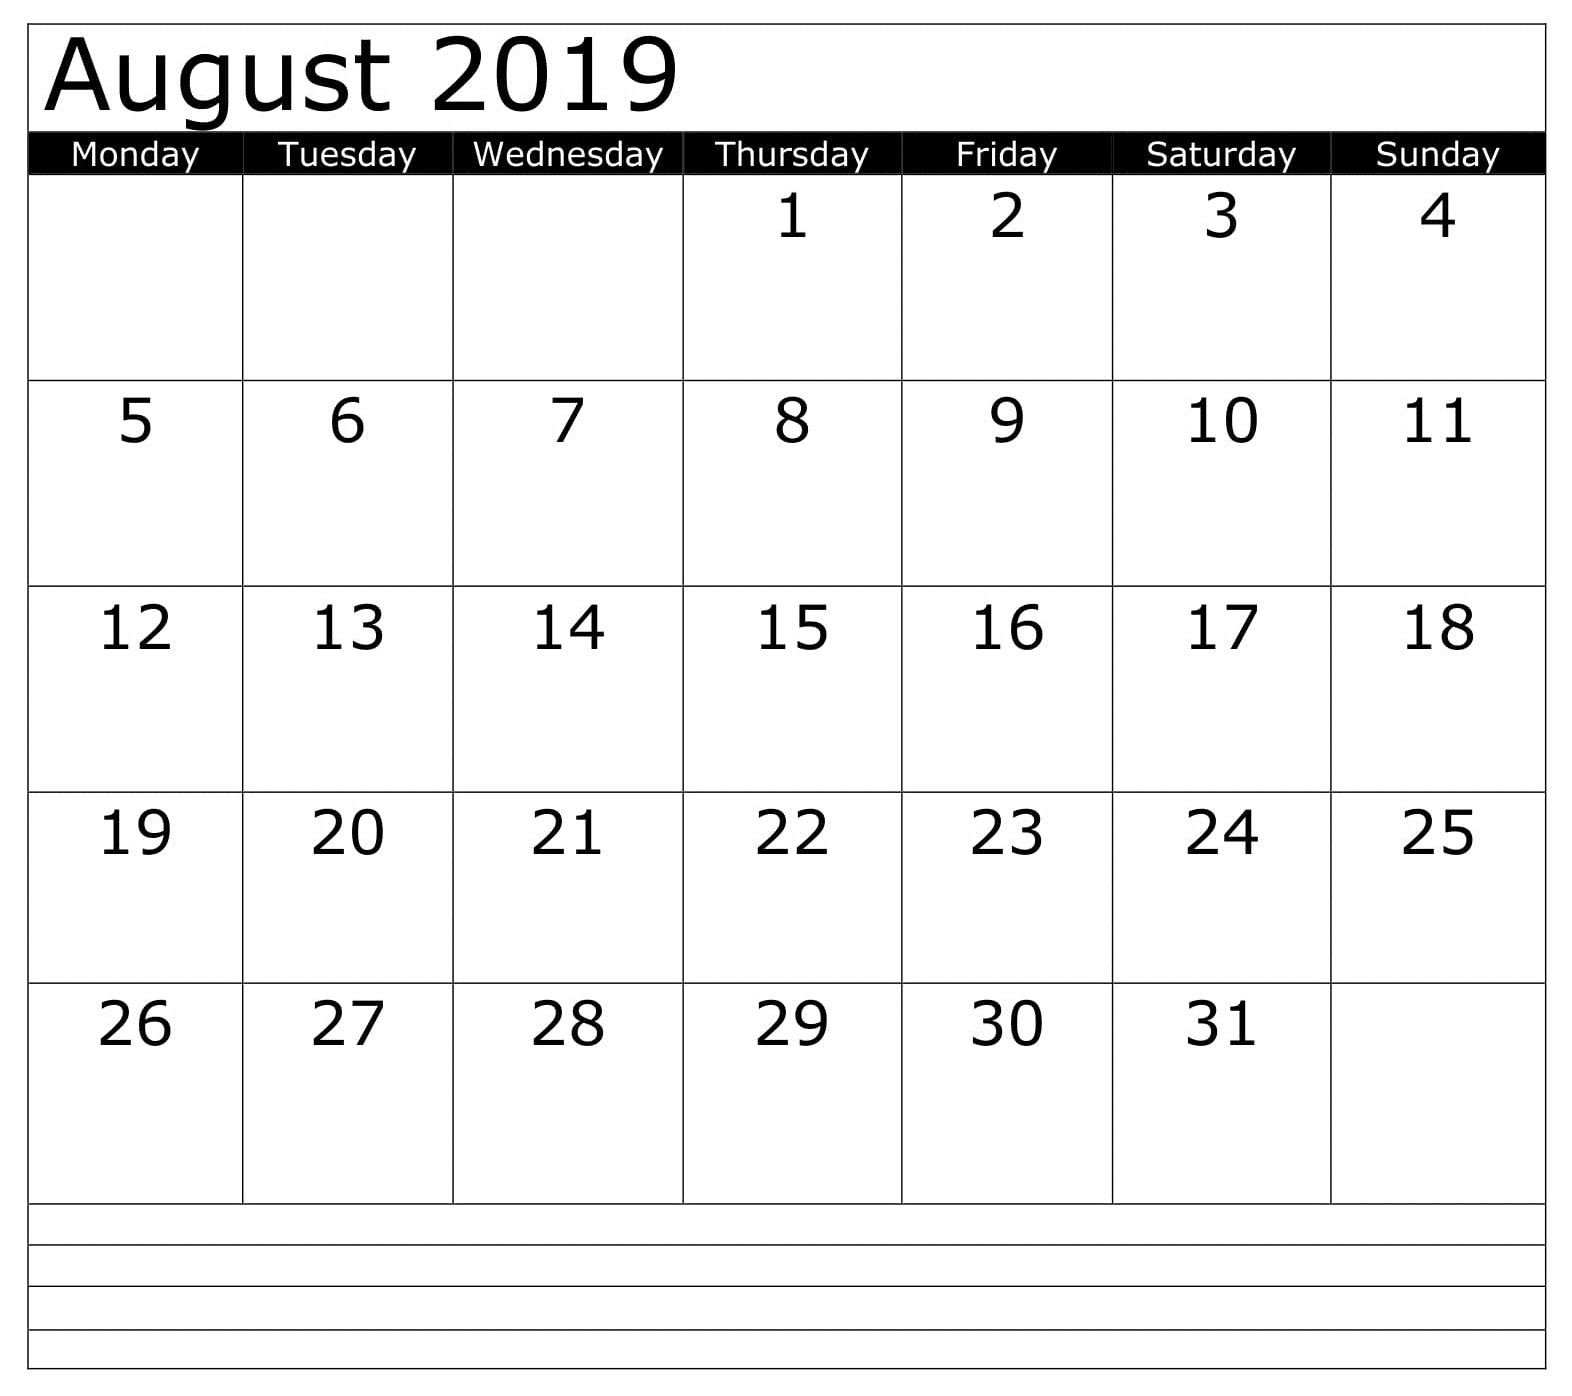 August Blank 2019 Business Calendar In 2019 | Monthly Blank Sunday Through Saturday Calendar